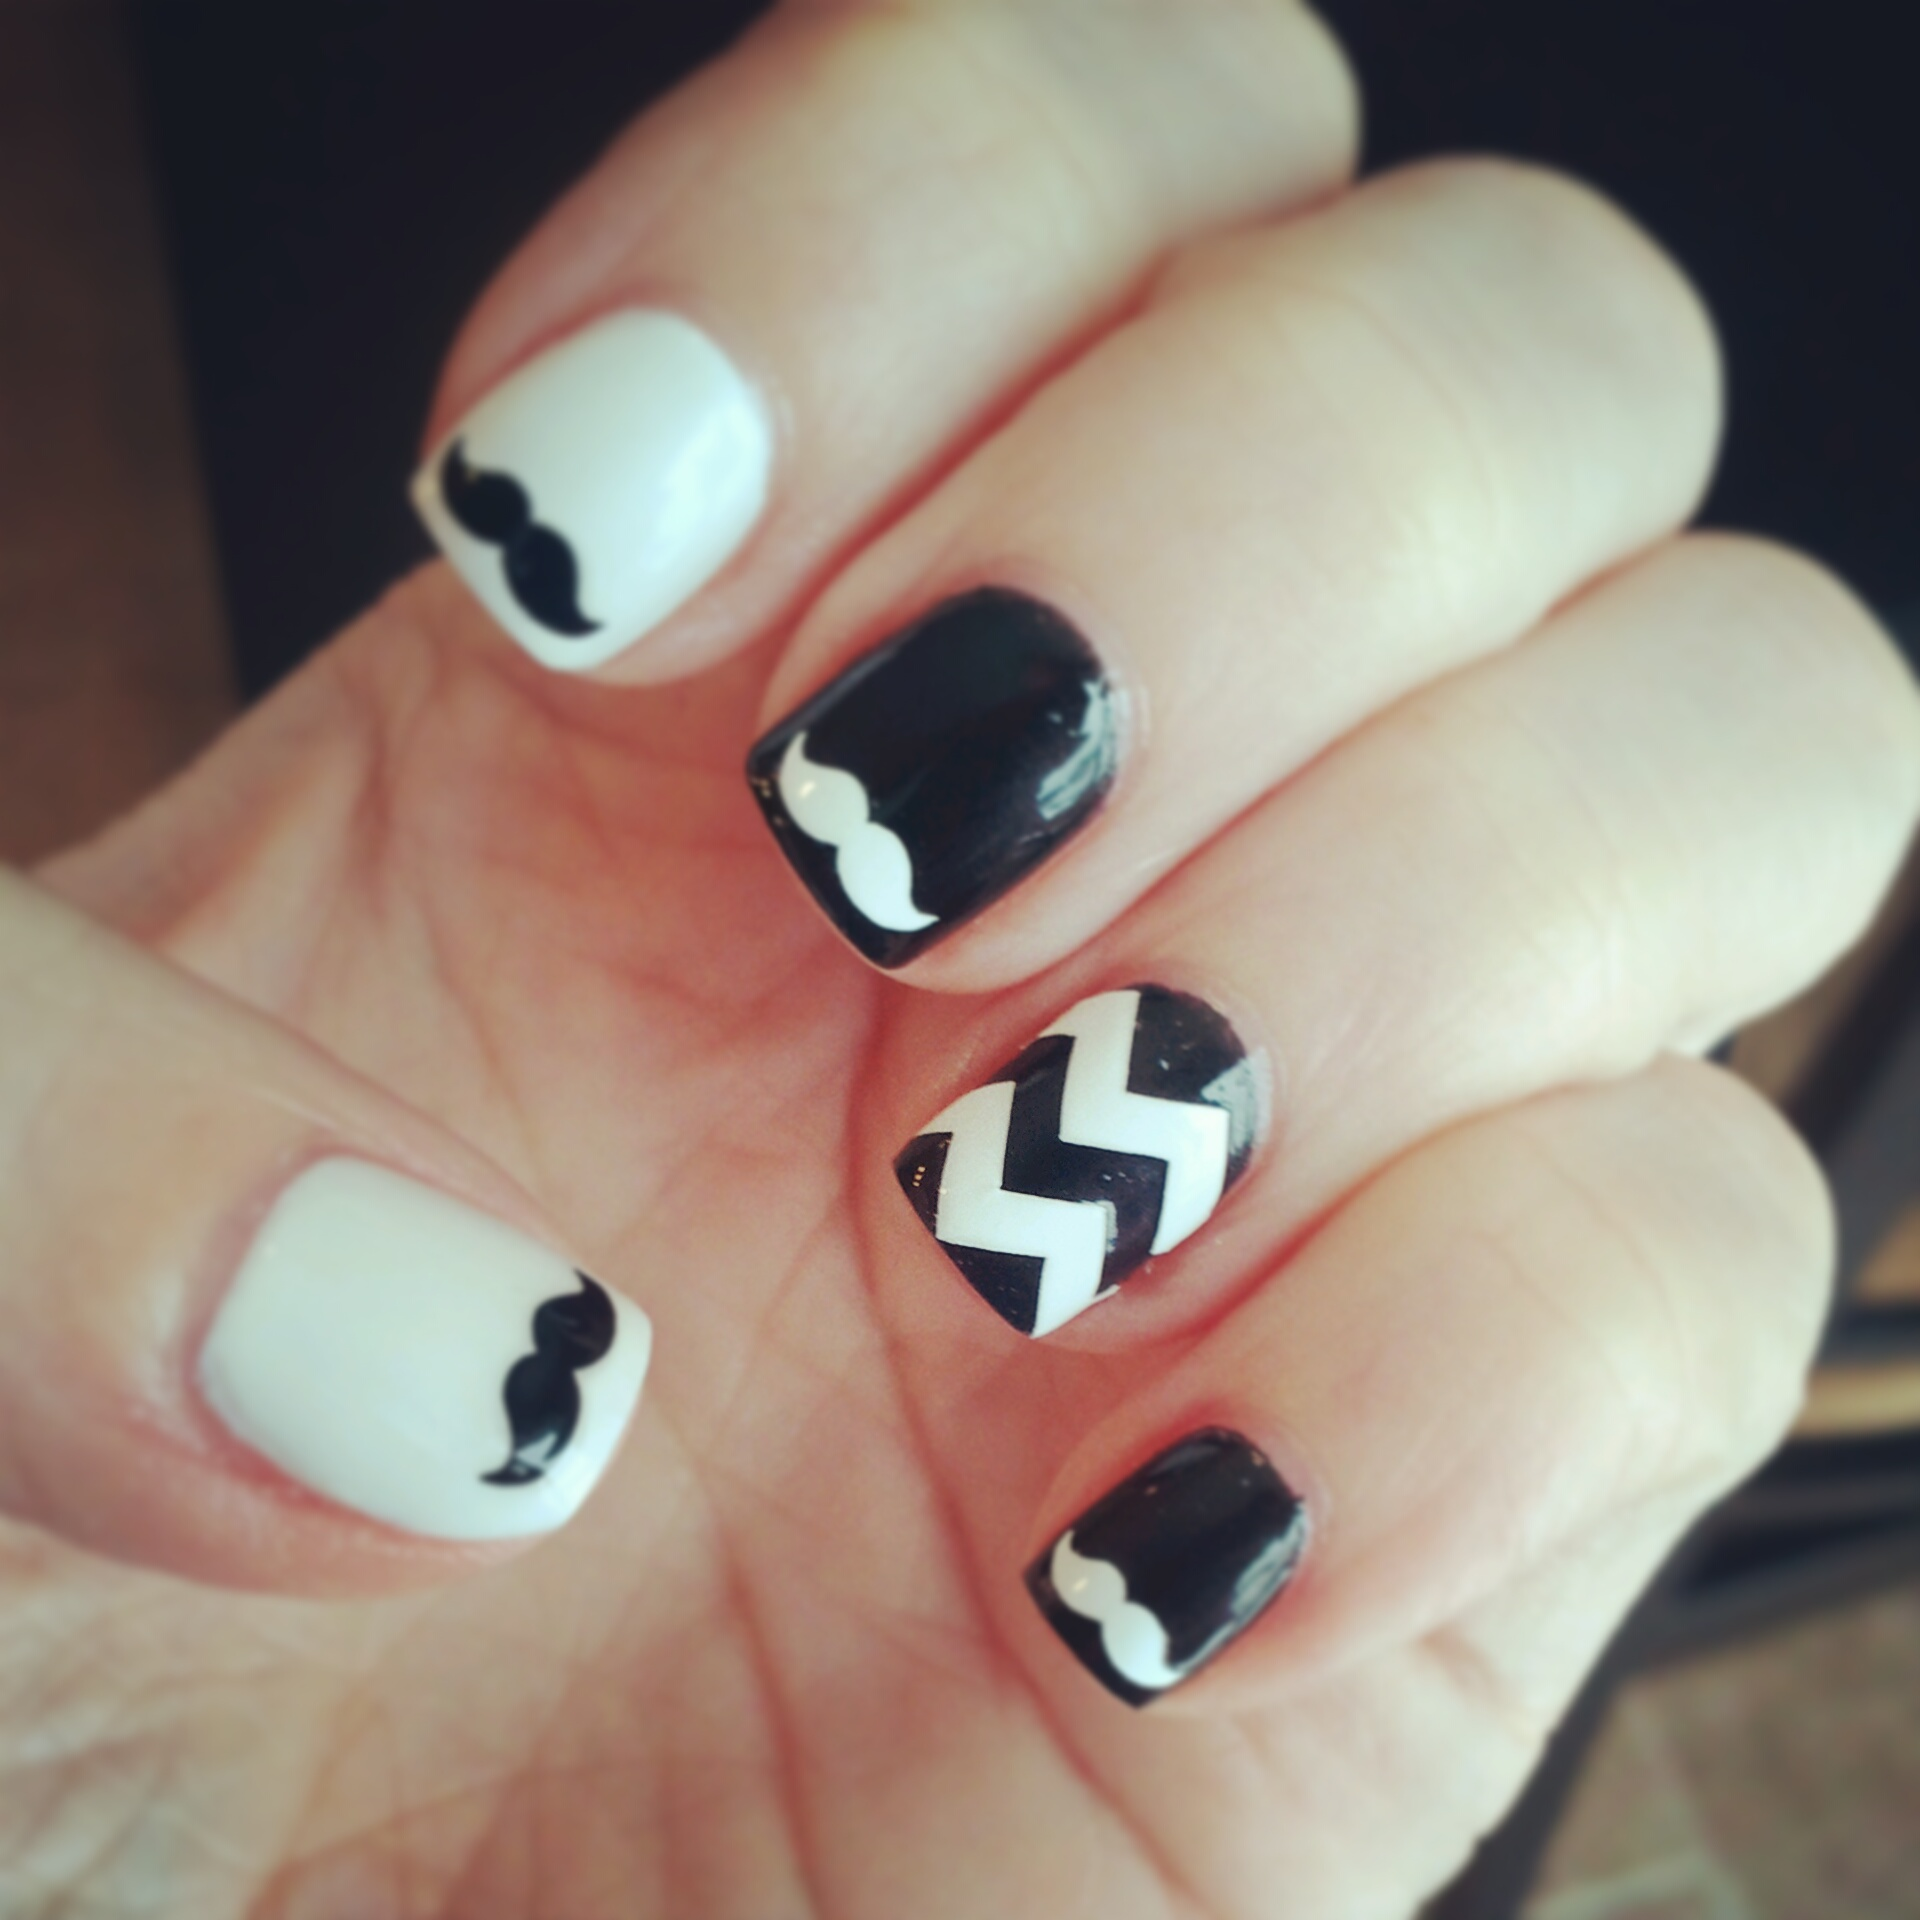 Water Decal Designer French Tips Nail